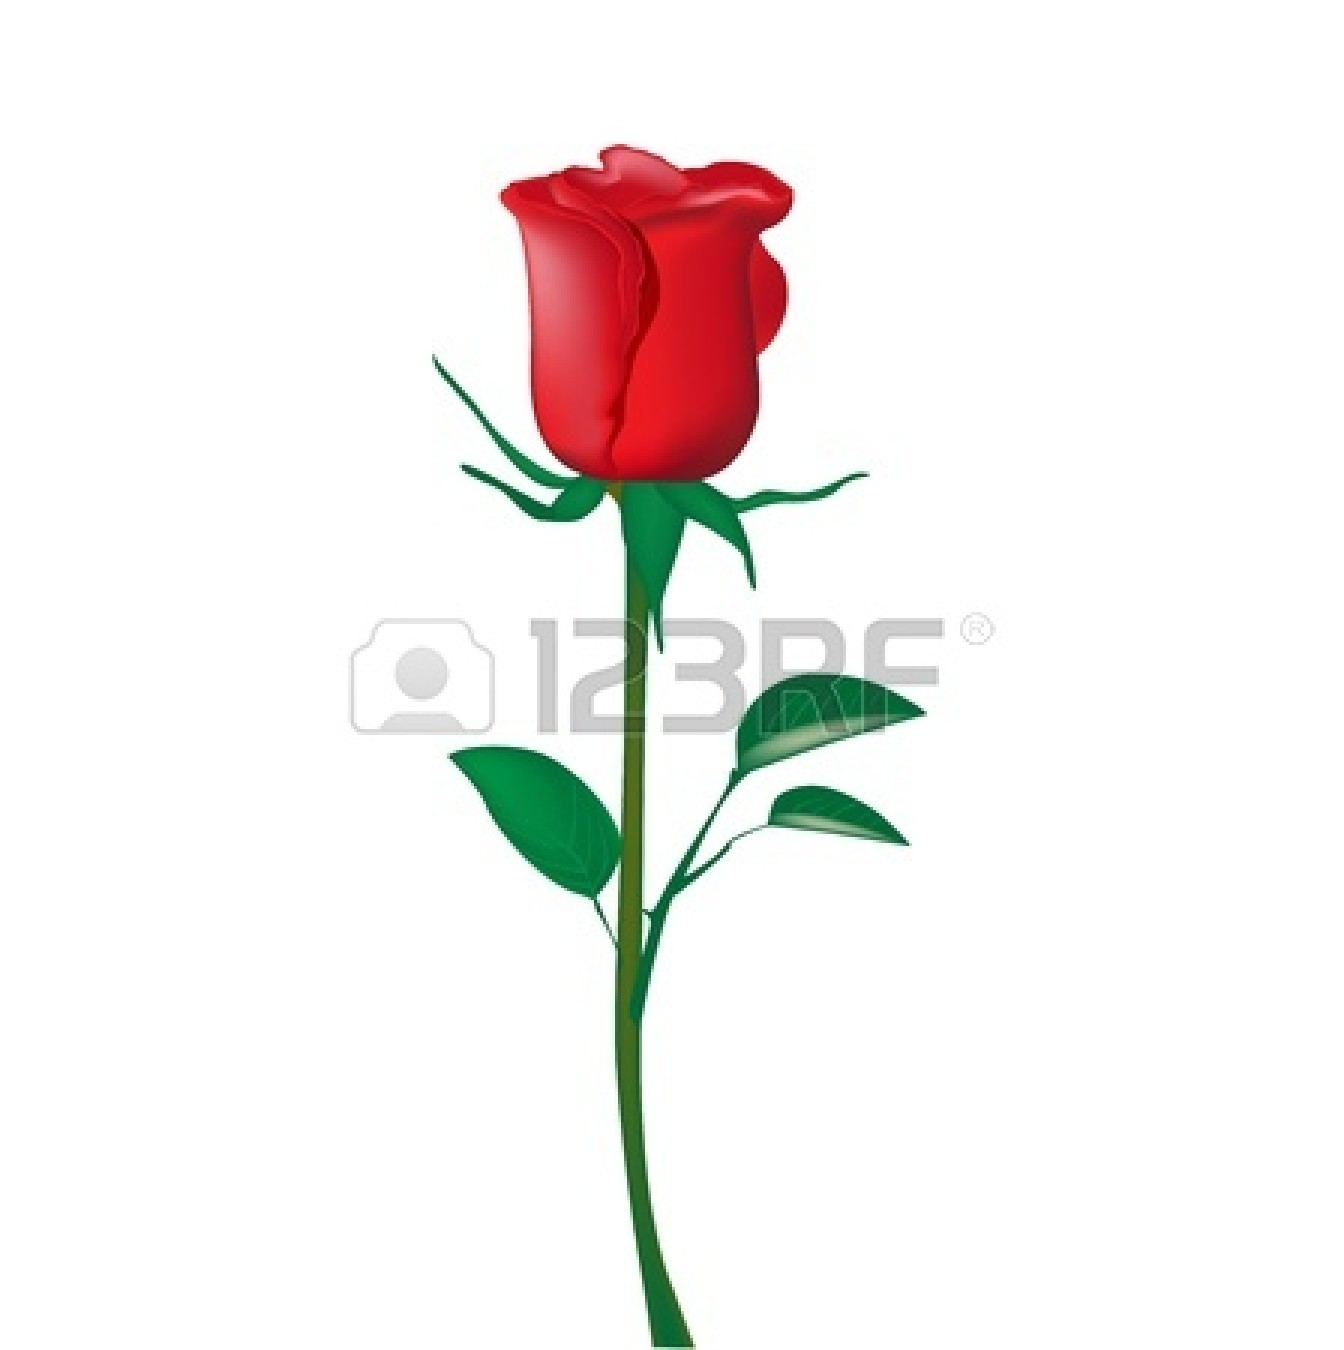 Single rose pictures clipart png freeuse library Rose Image | Free download best Rose Image on ClipArtMag.com png freeuse library